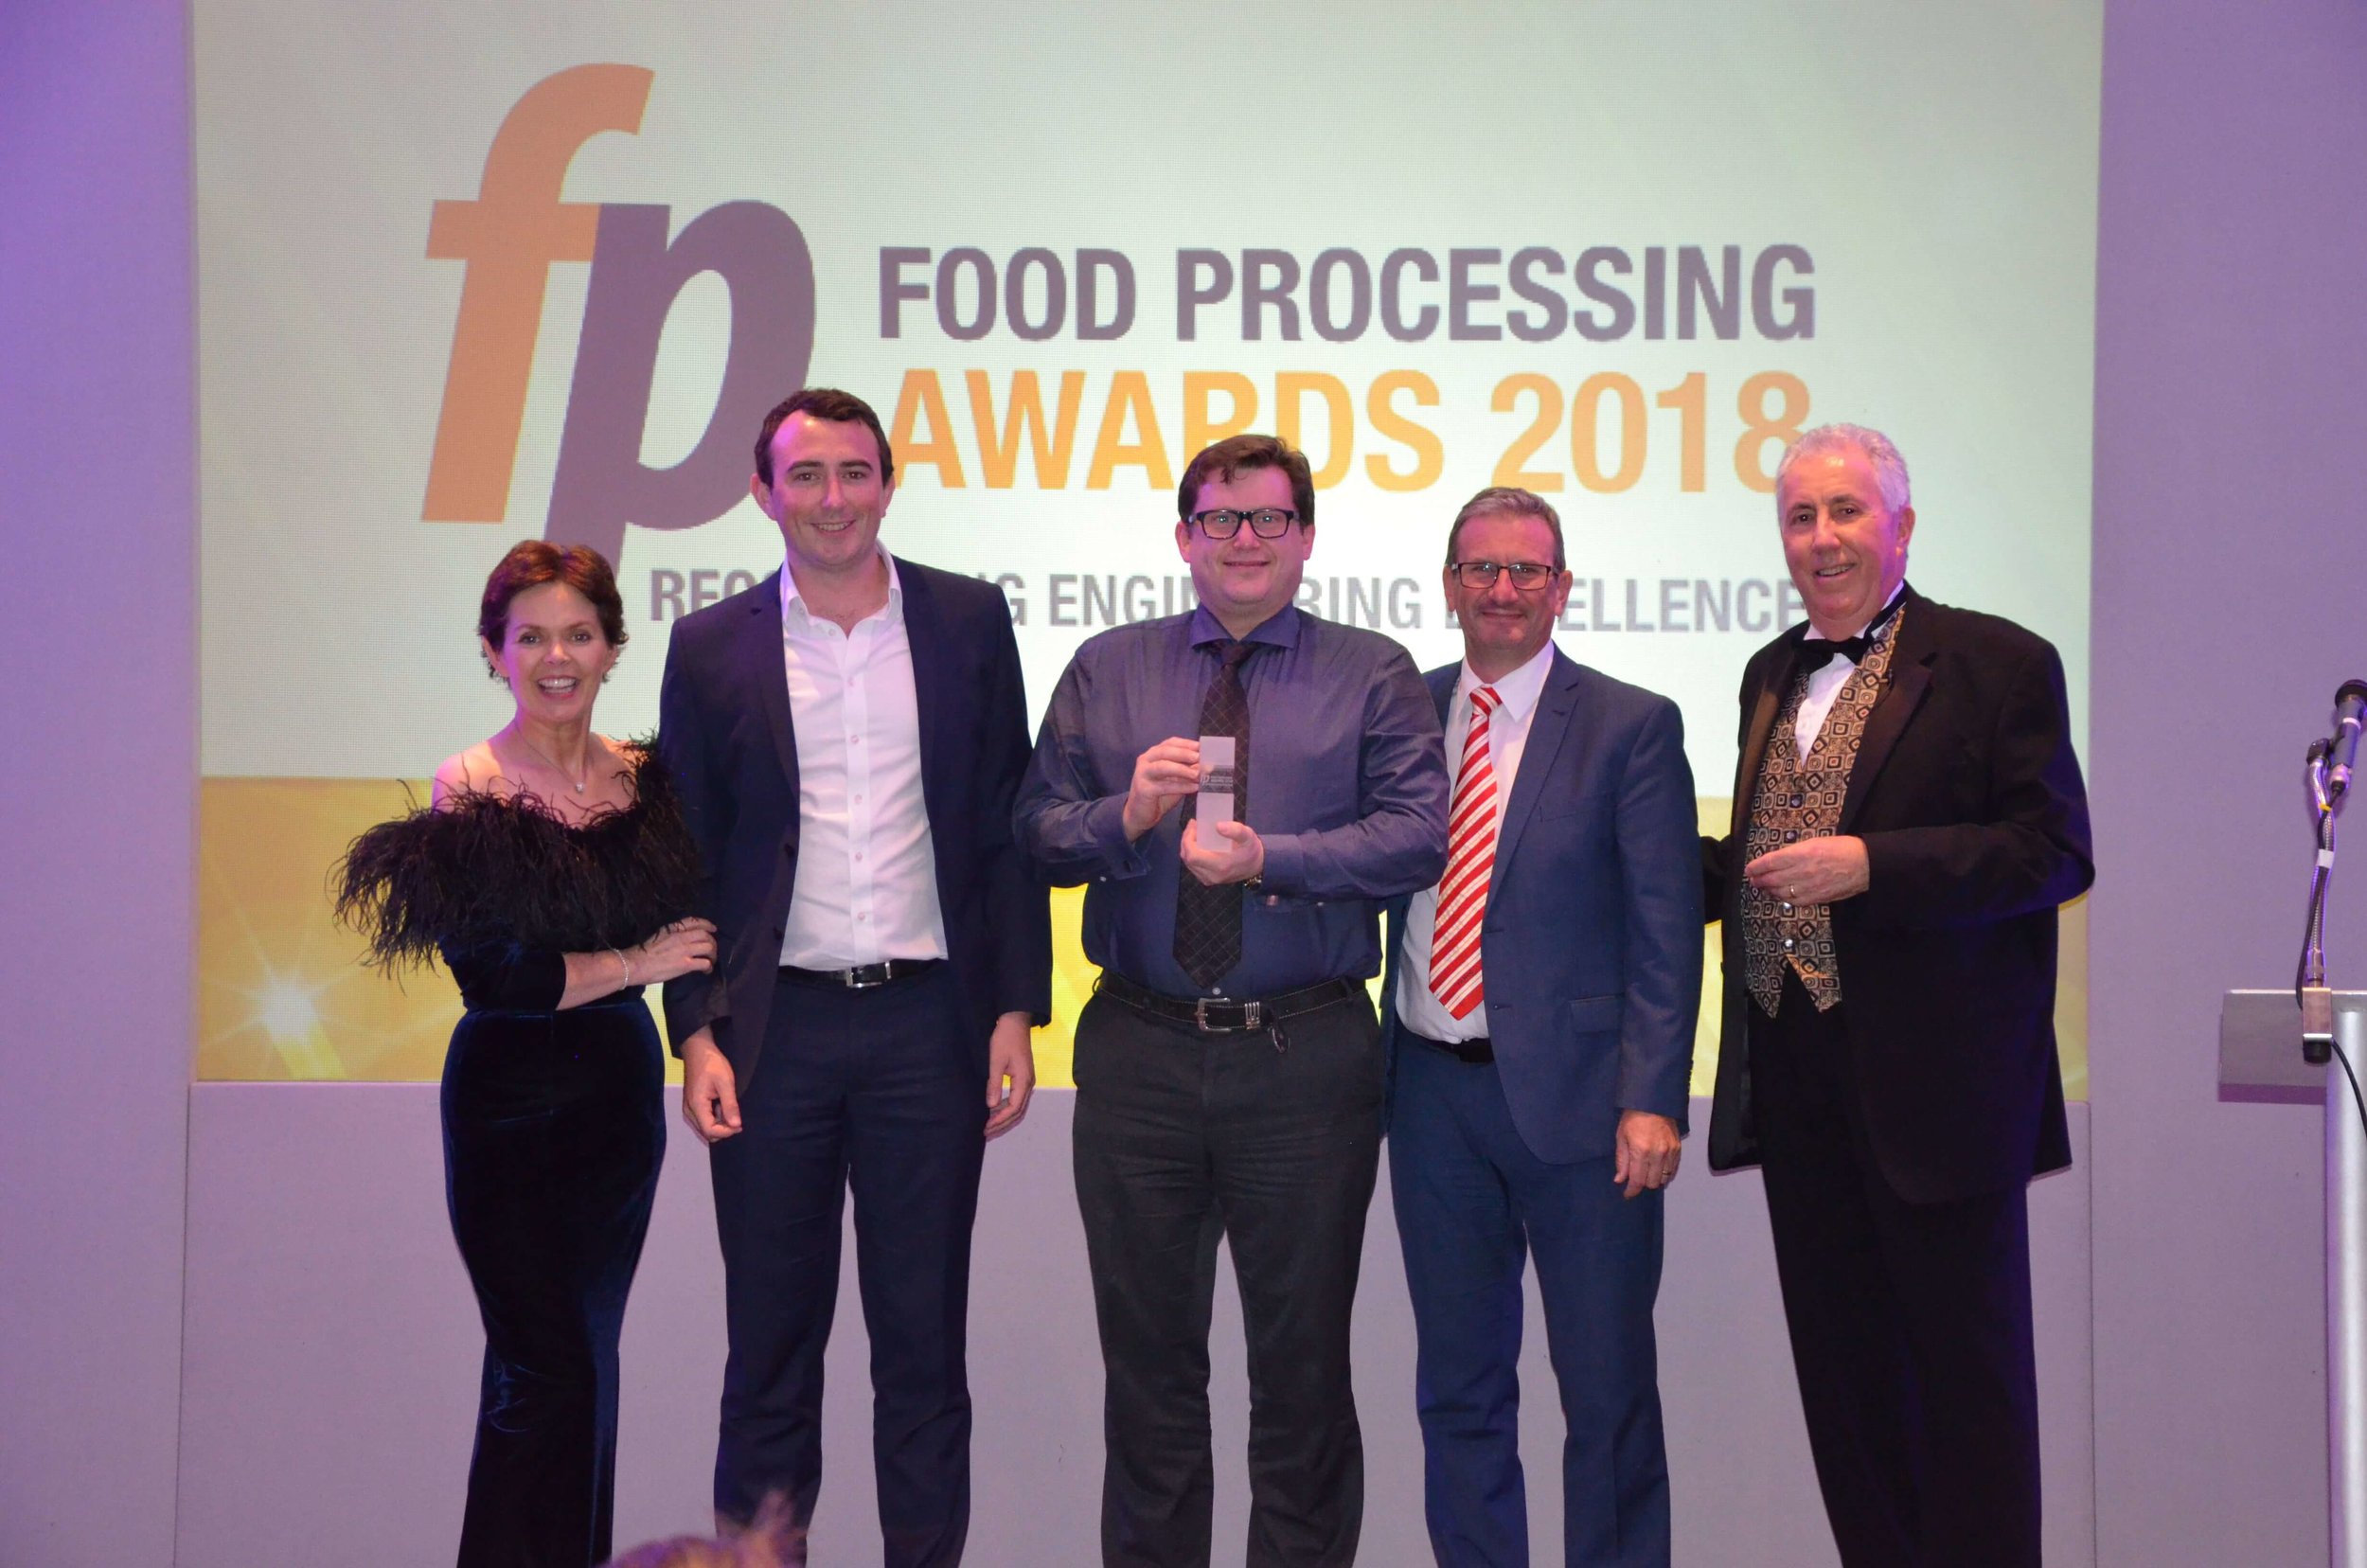 Food Processing Awards 2018-min.JPG